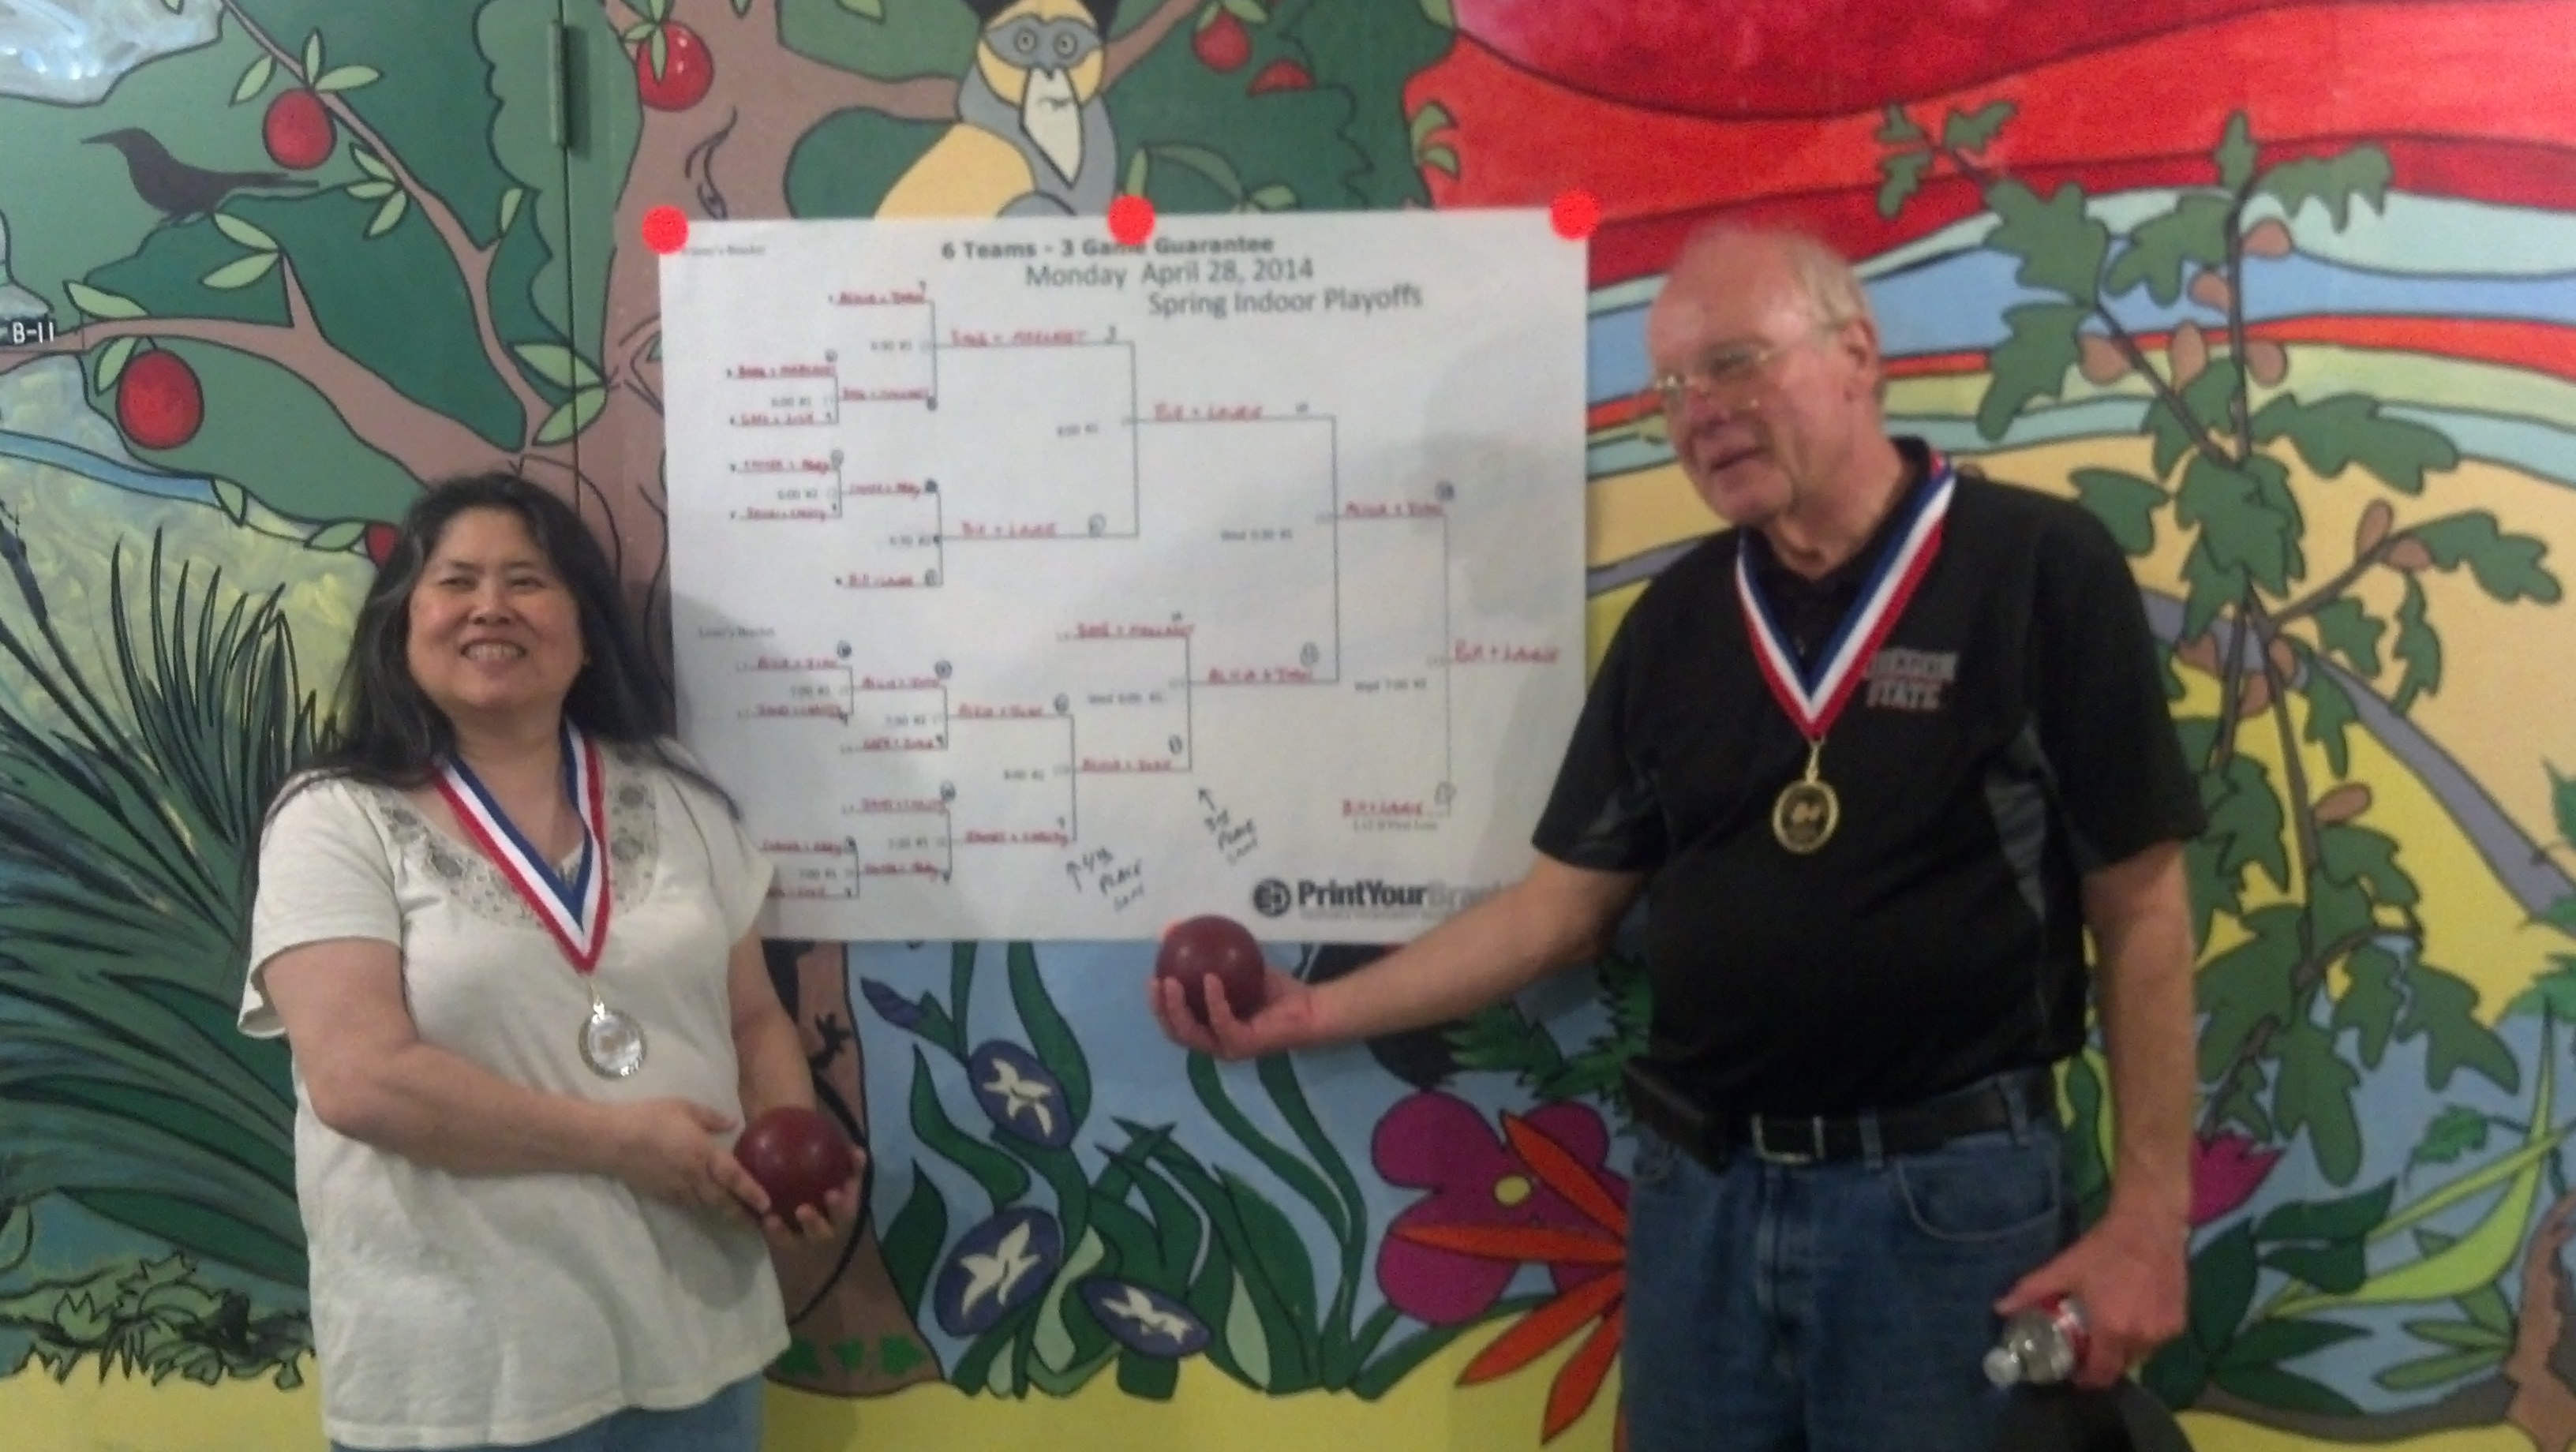 Bill & Laurie, 2nd Place, Spring Indoor League Tournamnet ...